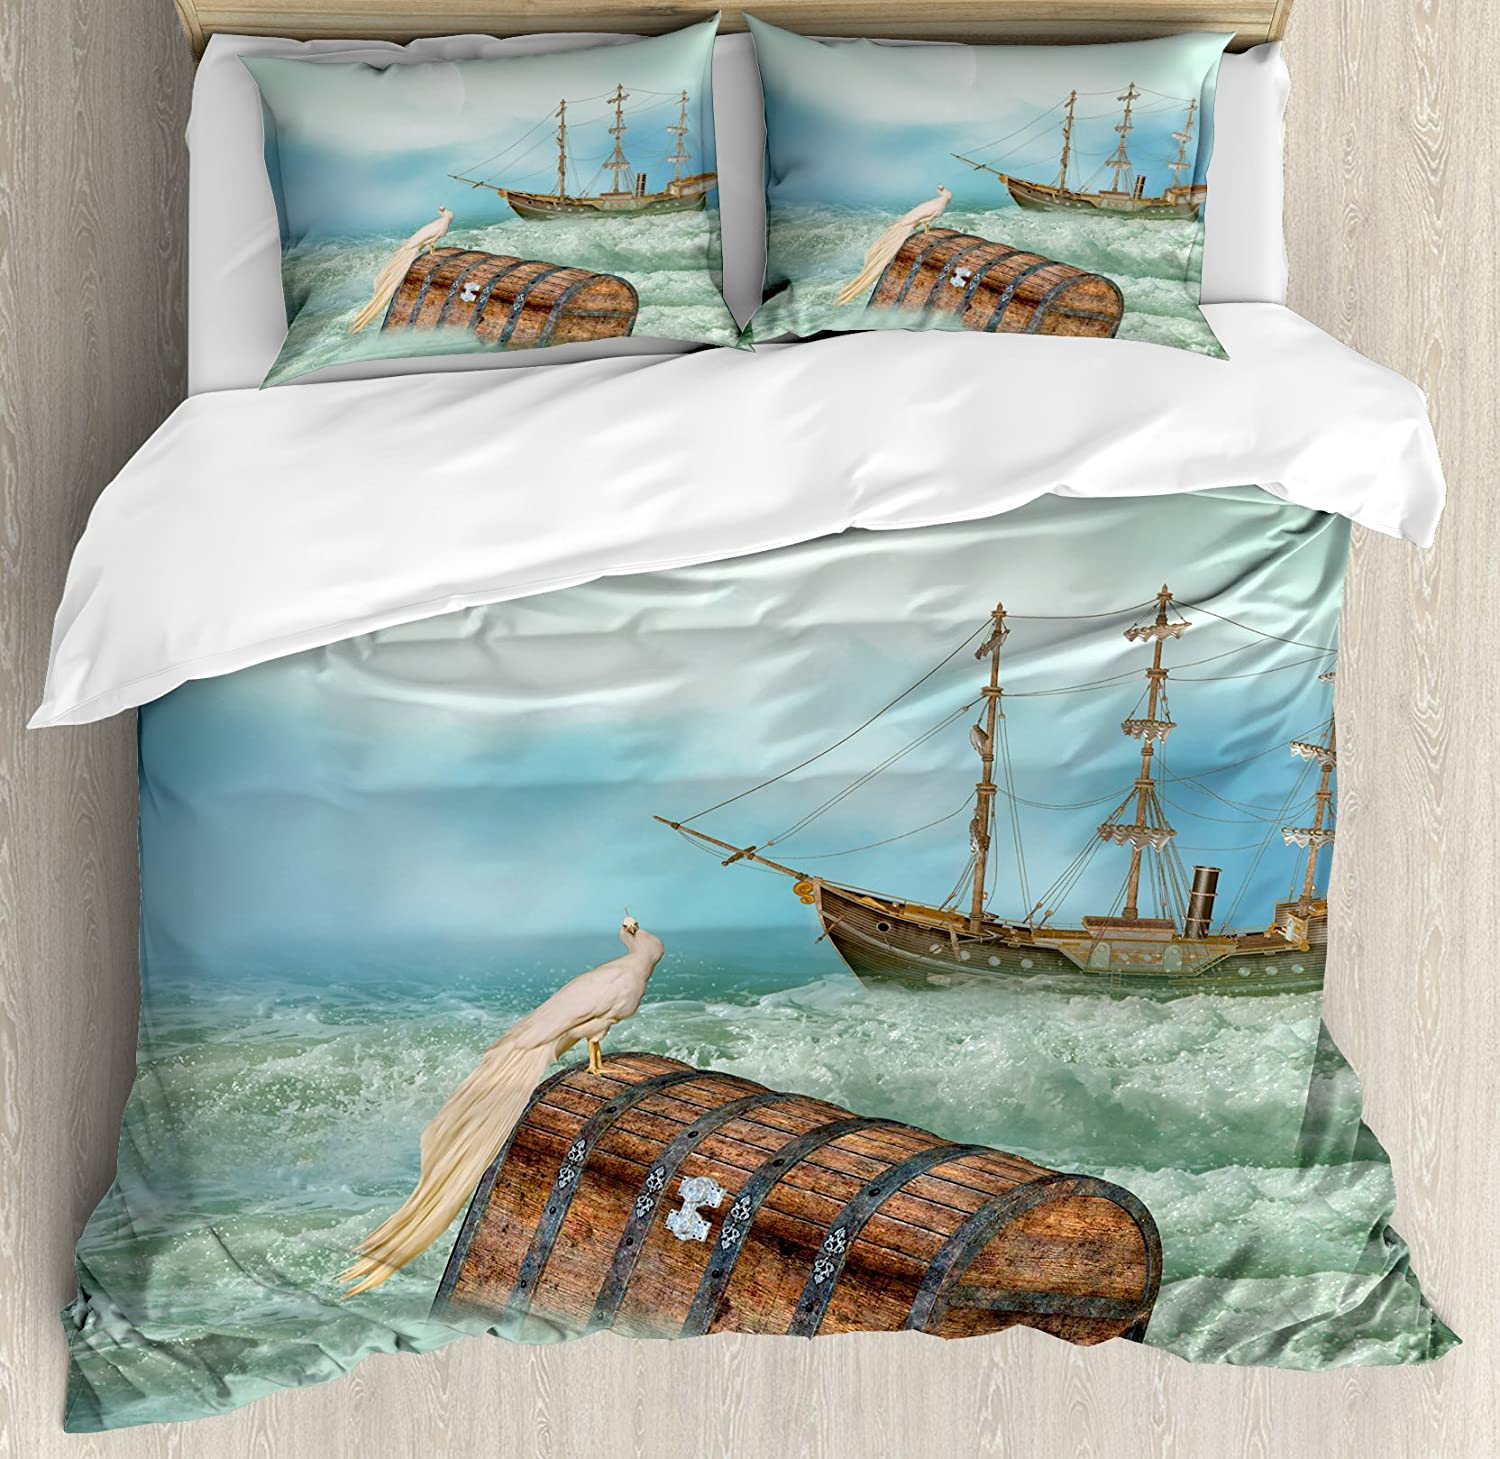 Antique Marble Stone with Blurry Distressed Motley Fractal Effects Illustration Blue nev/_19438/_queen 3 Piece Bedding Set with Pillow Shams Ambesonne Apartment Decor Duvet Cover Set Queen//Full